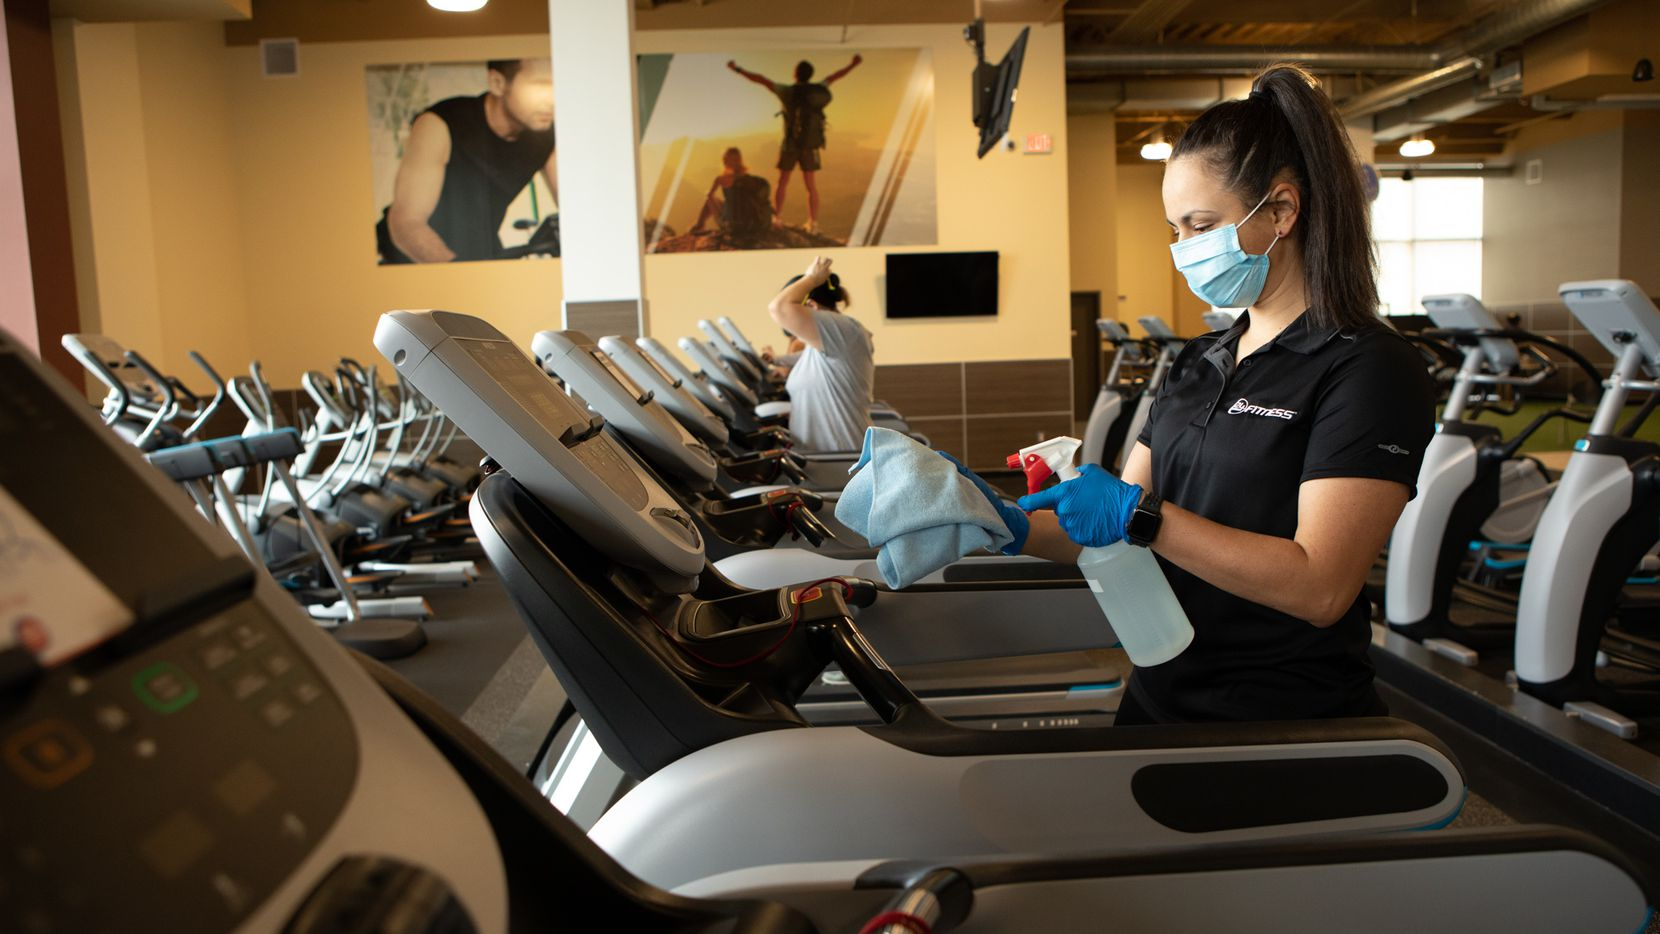 An employee sanitizes treadmills at a 24 Hour Fitness location. The company recently announced it was permanently closing 24 club locations across Texas as it repositioned itself amid the pandemic.